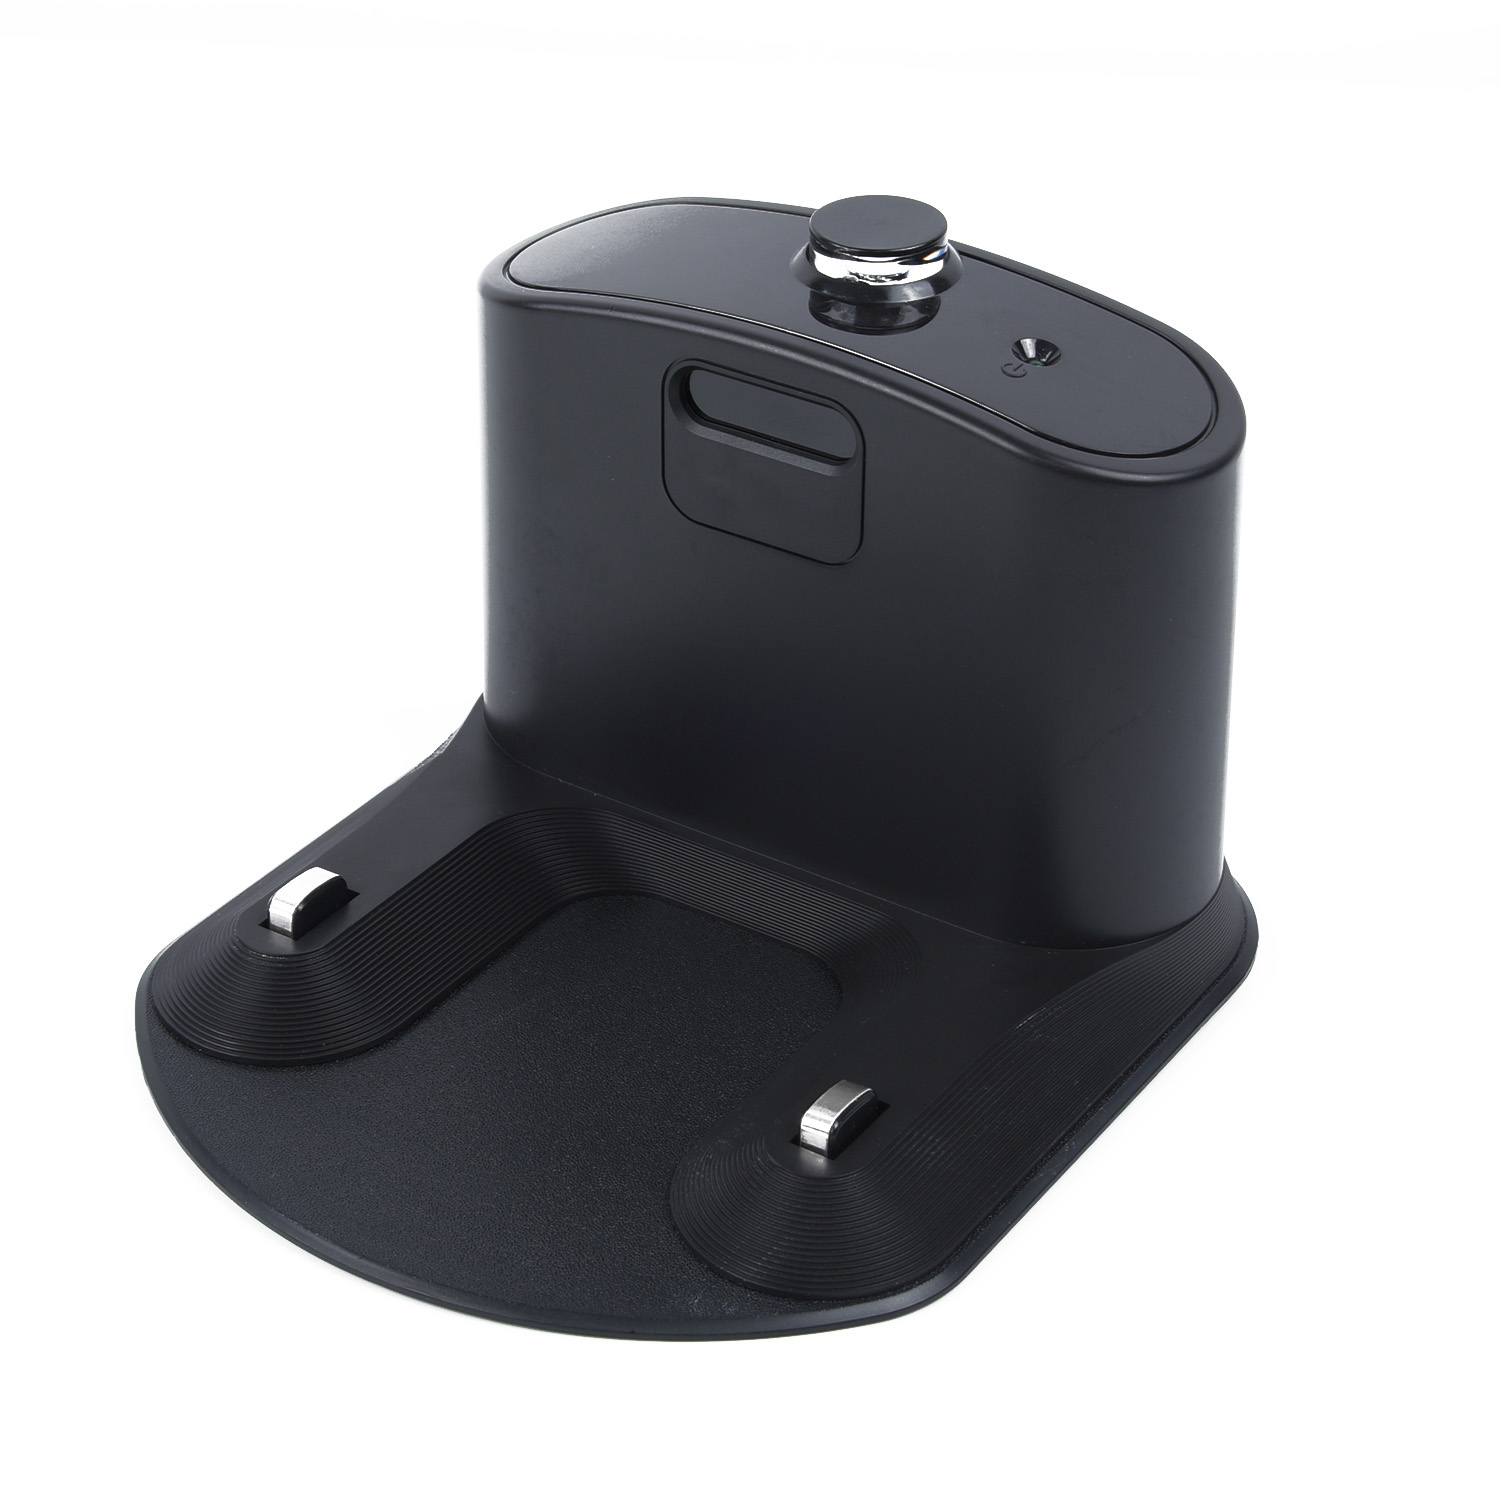 1pc Charging Base Dock Station For IRobot Roomba 500/600/700 Series Vacuum Cleaner Black Accessories